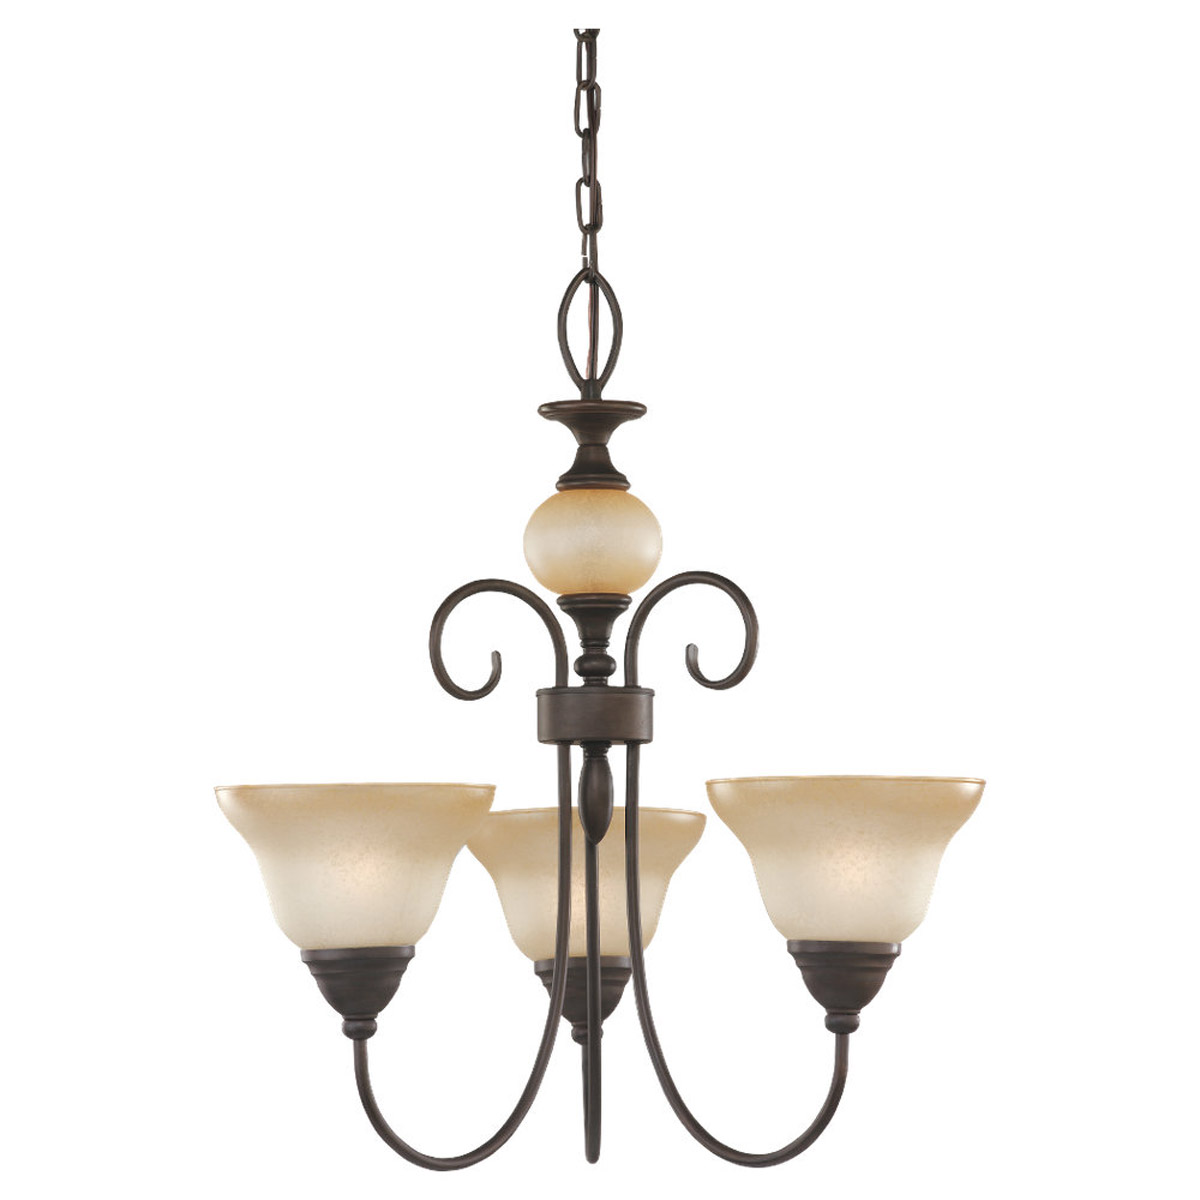 Sea Gull Lighting Montclaire 3 Light Chandelier in Olde Iron 31105-72